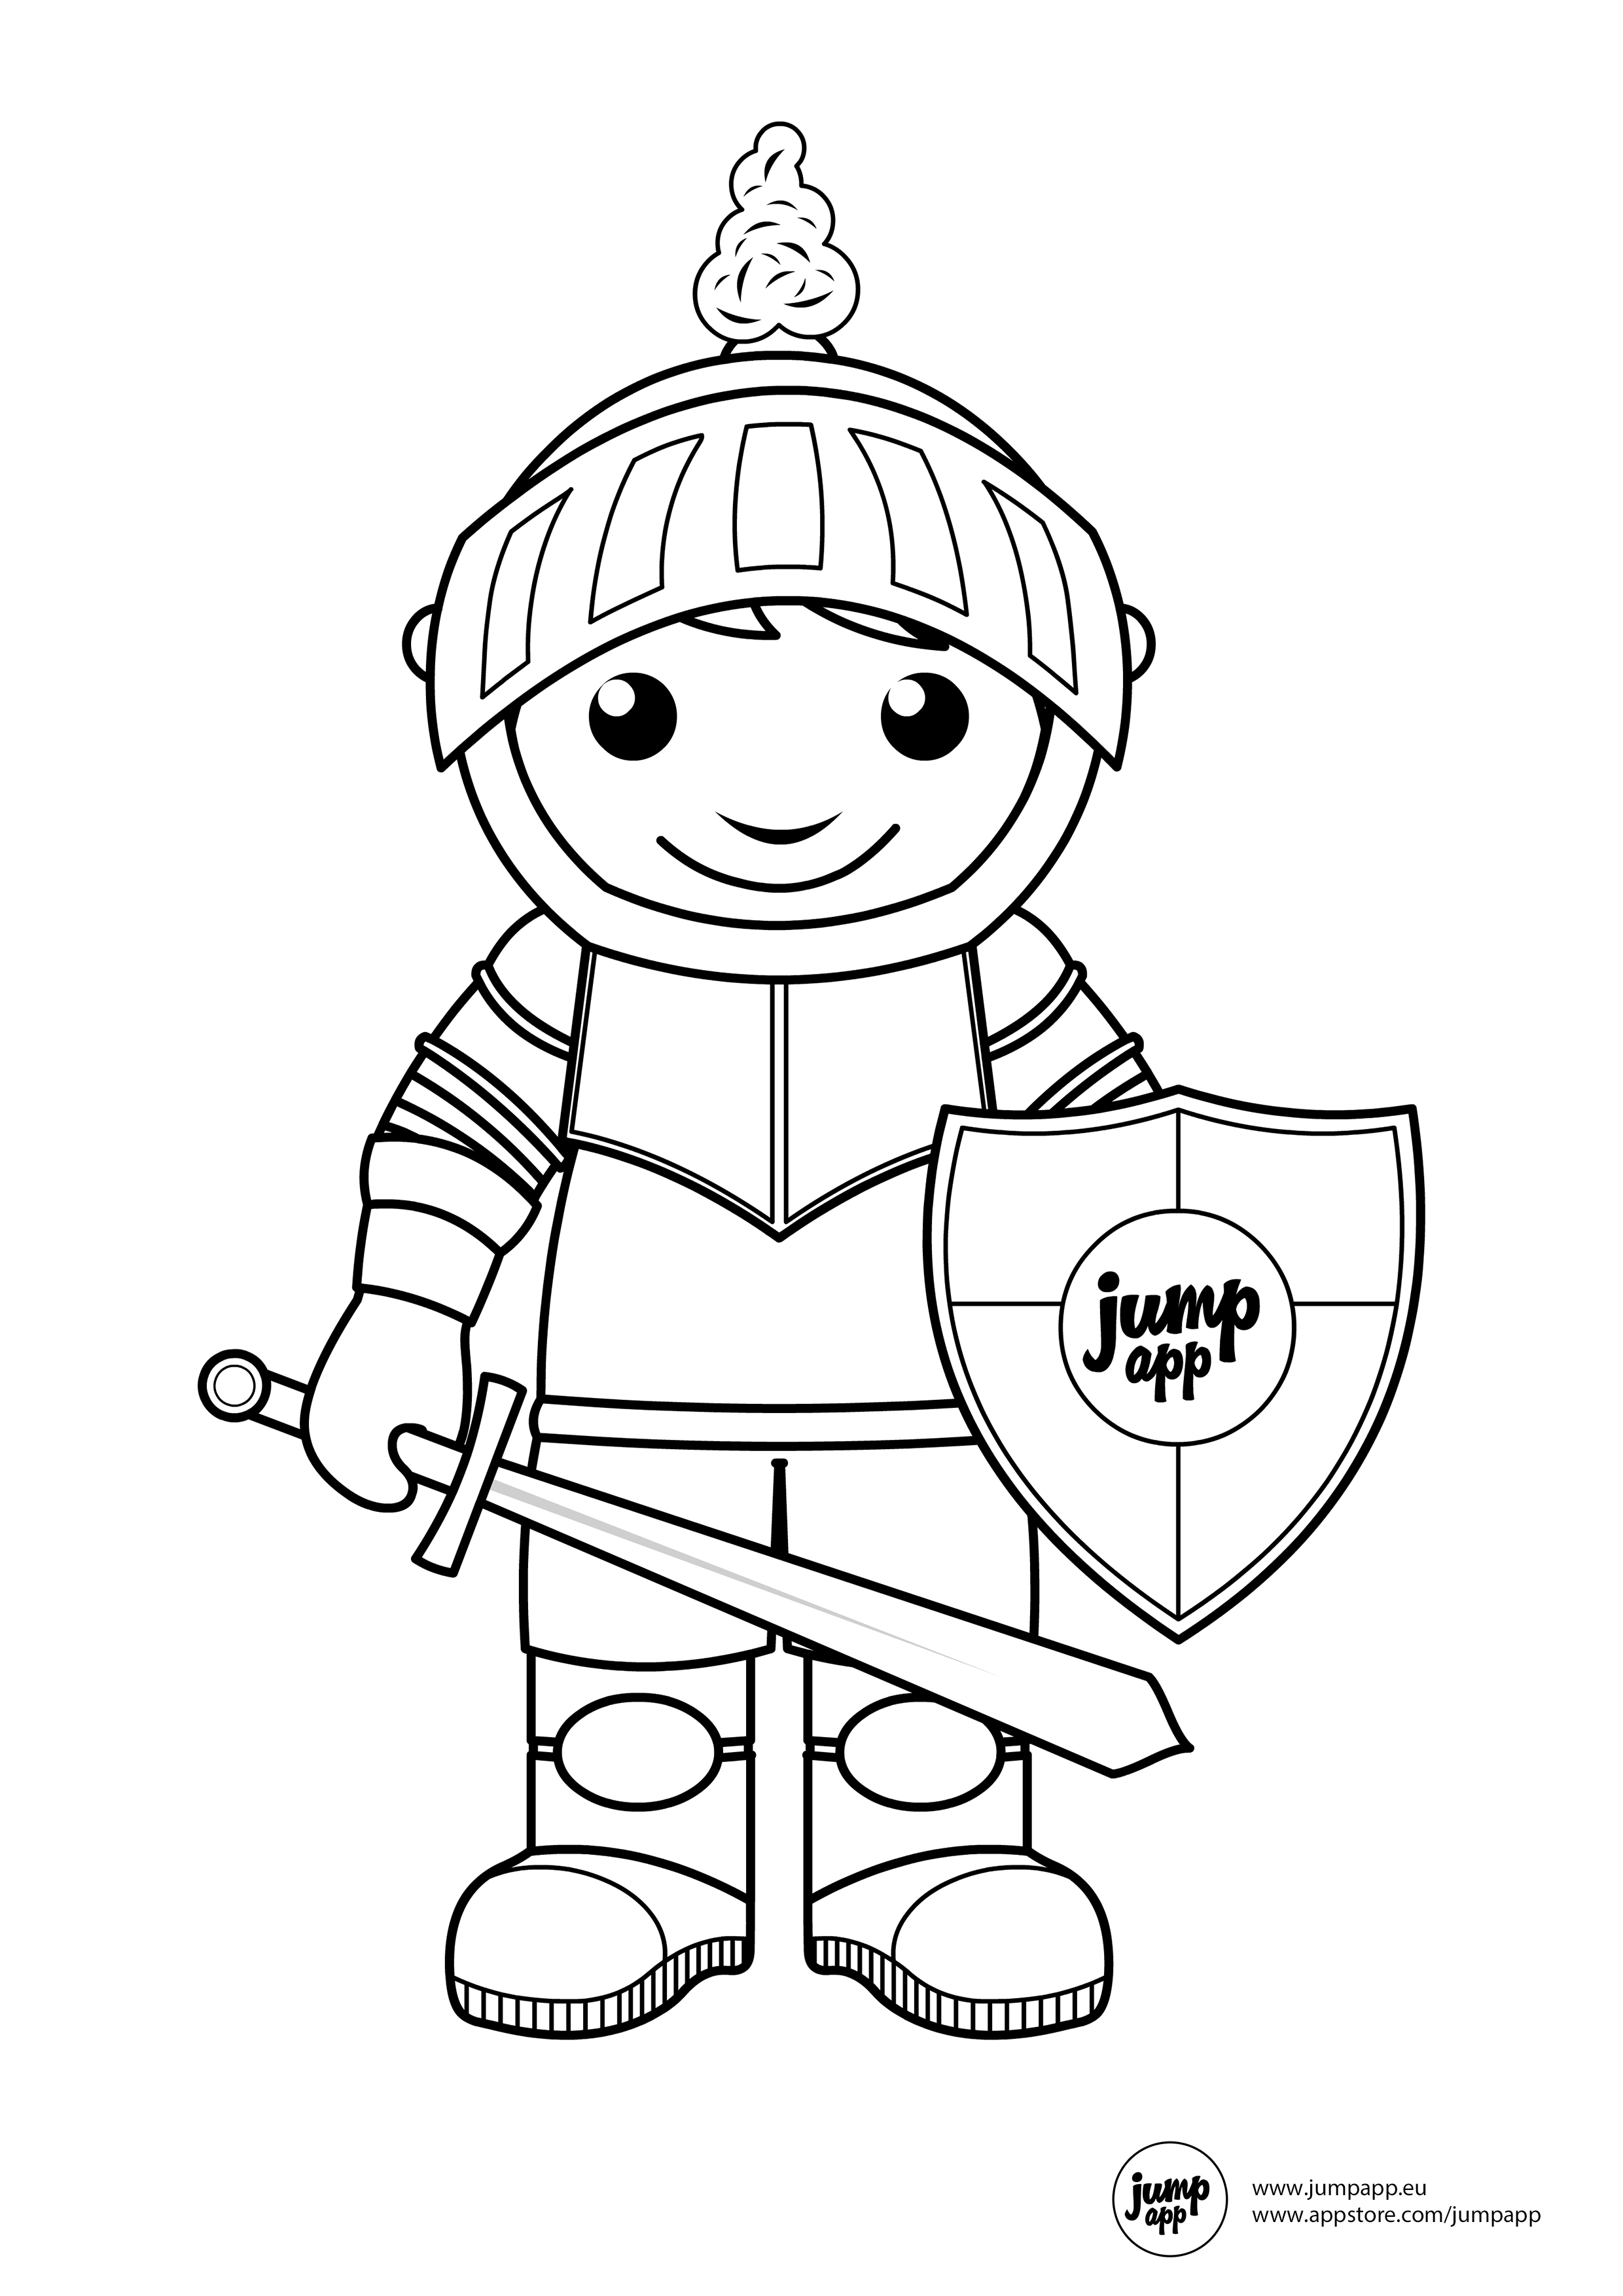 2480x3508 Knight Printable Coloring Pages Knight, Pre School